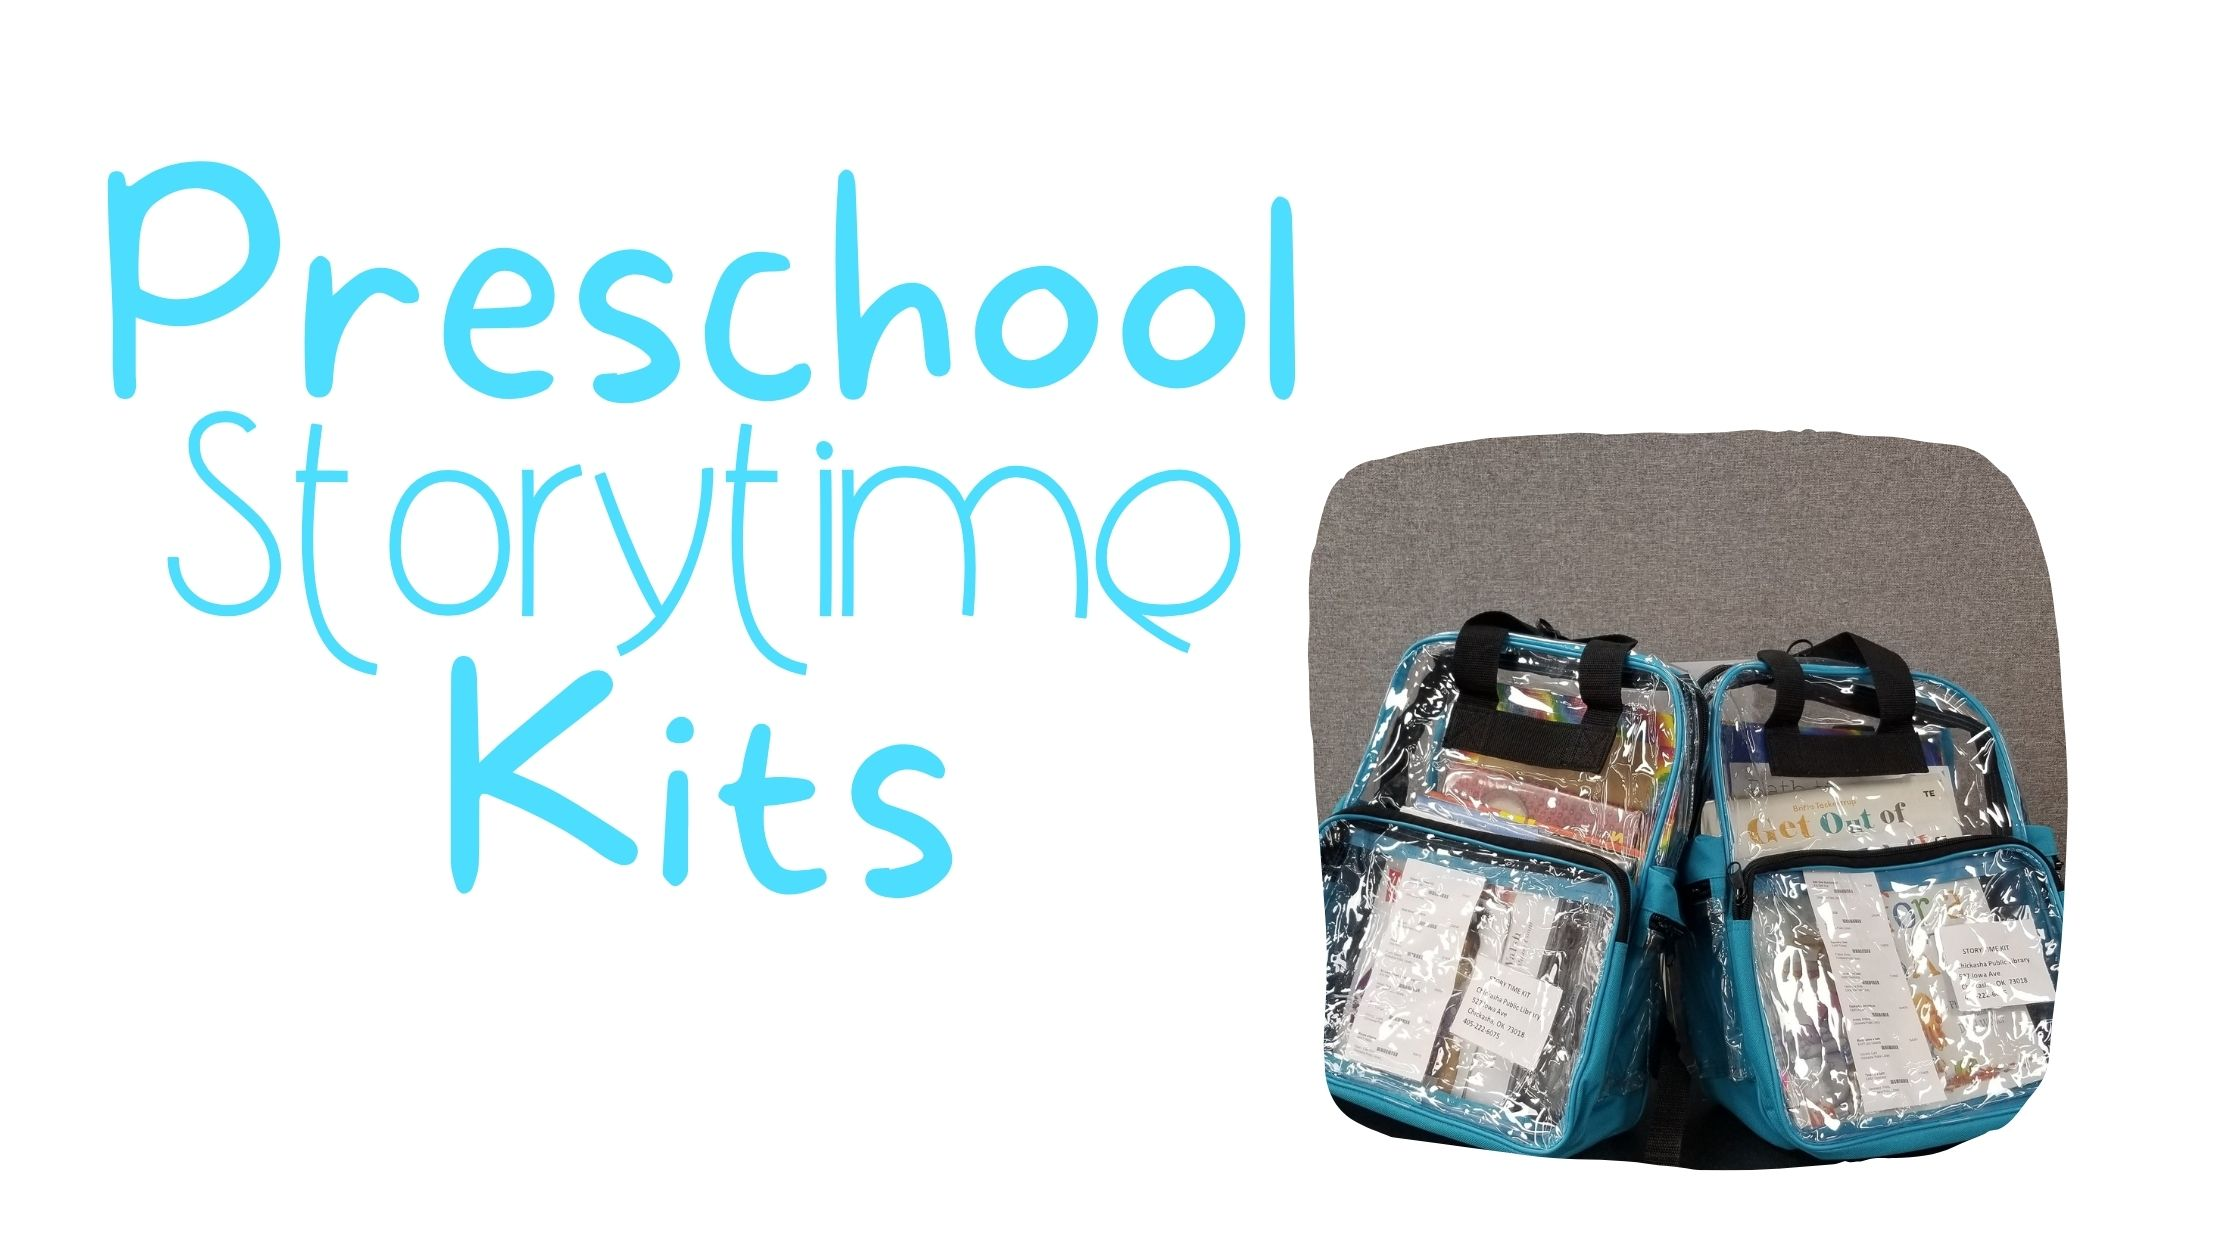 Preschool Storytime kits contain books and ativities geared toward children 5 and younger